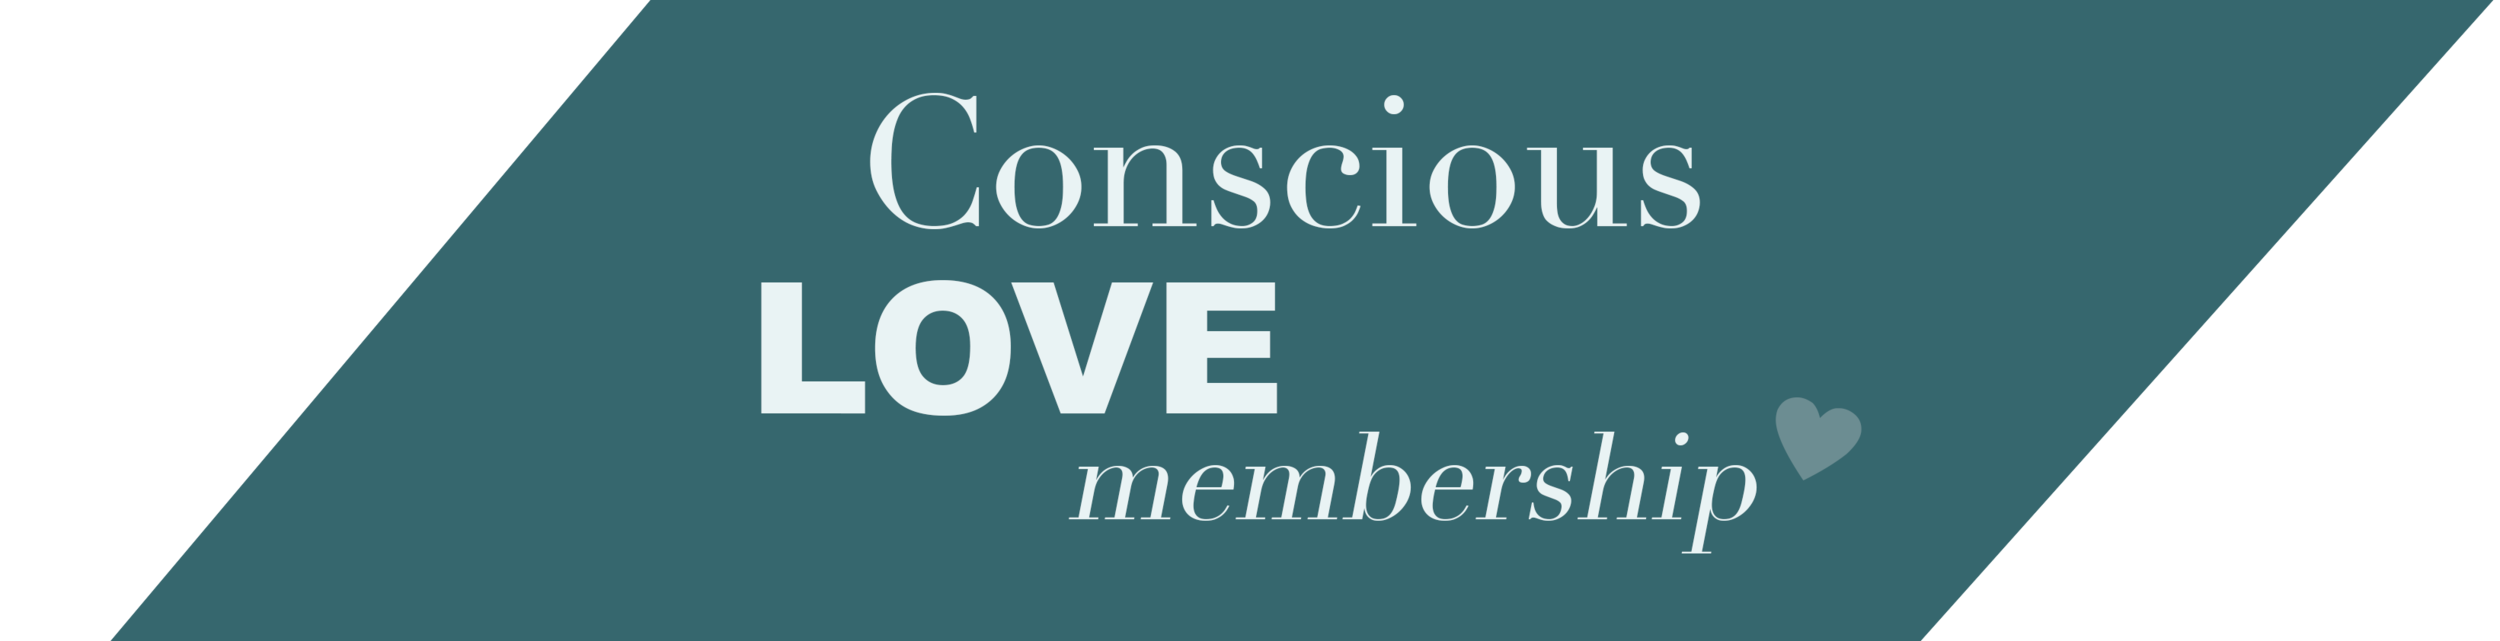 Conscious love.png